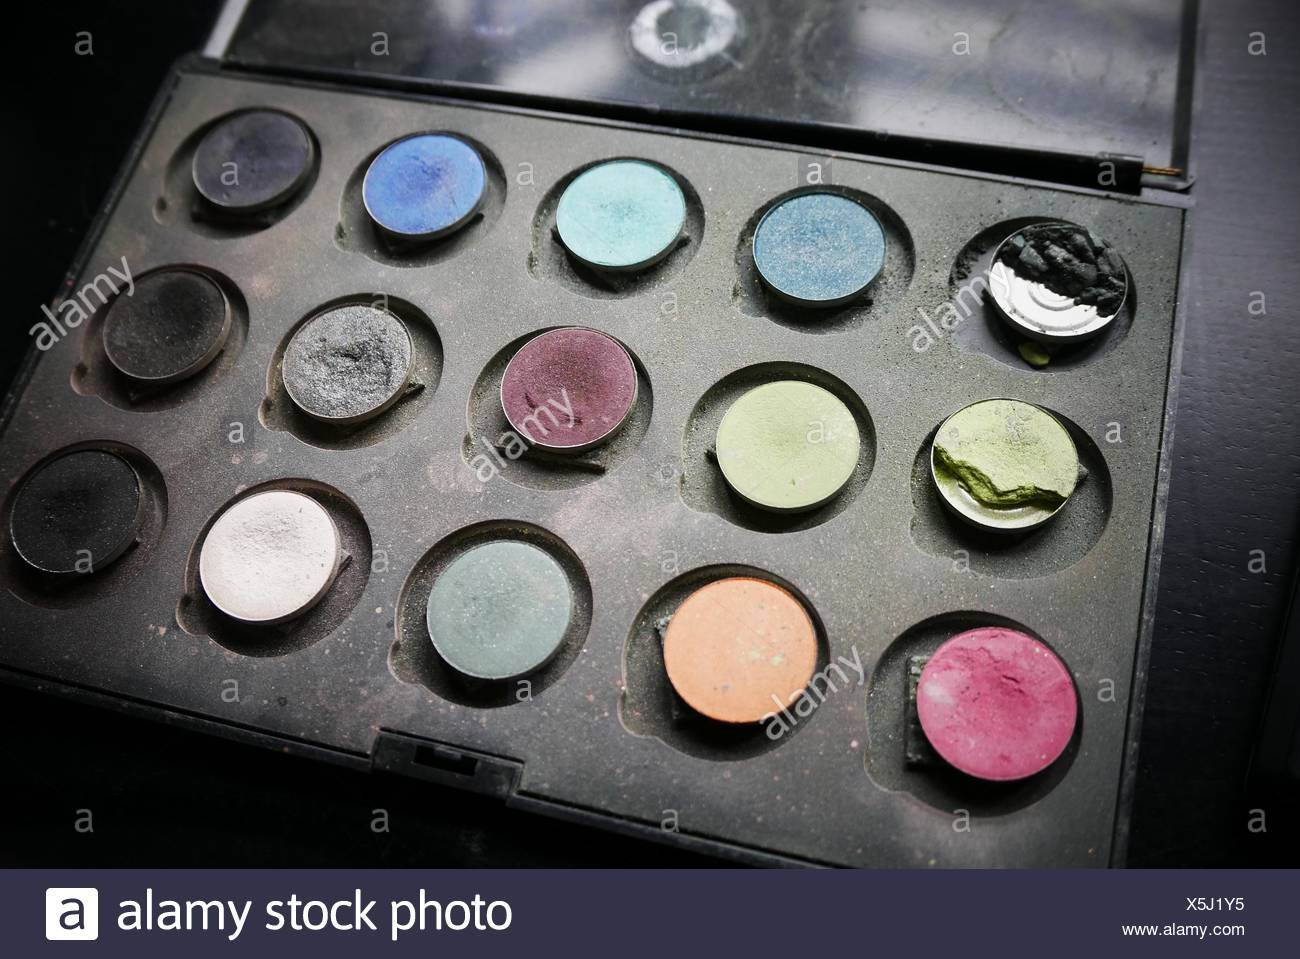 High Angle View Of Eyeshadow Kit - Stock Image